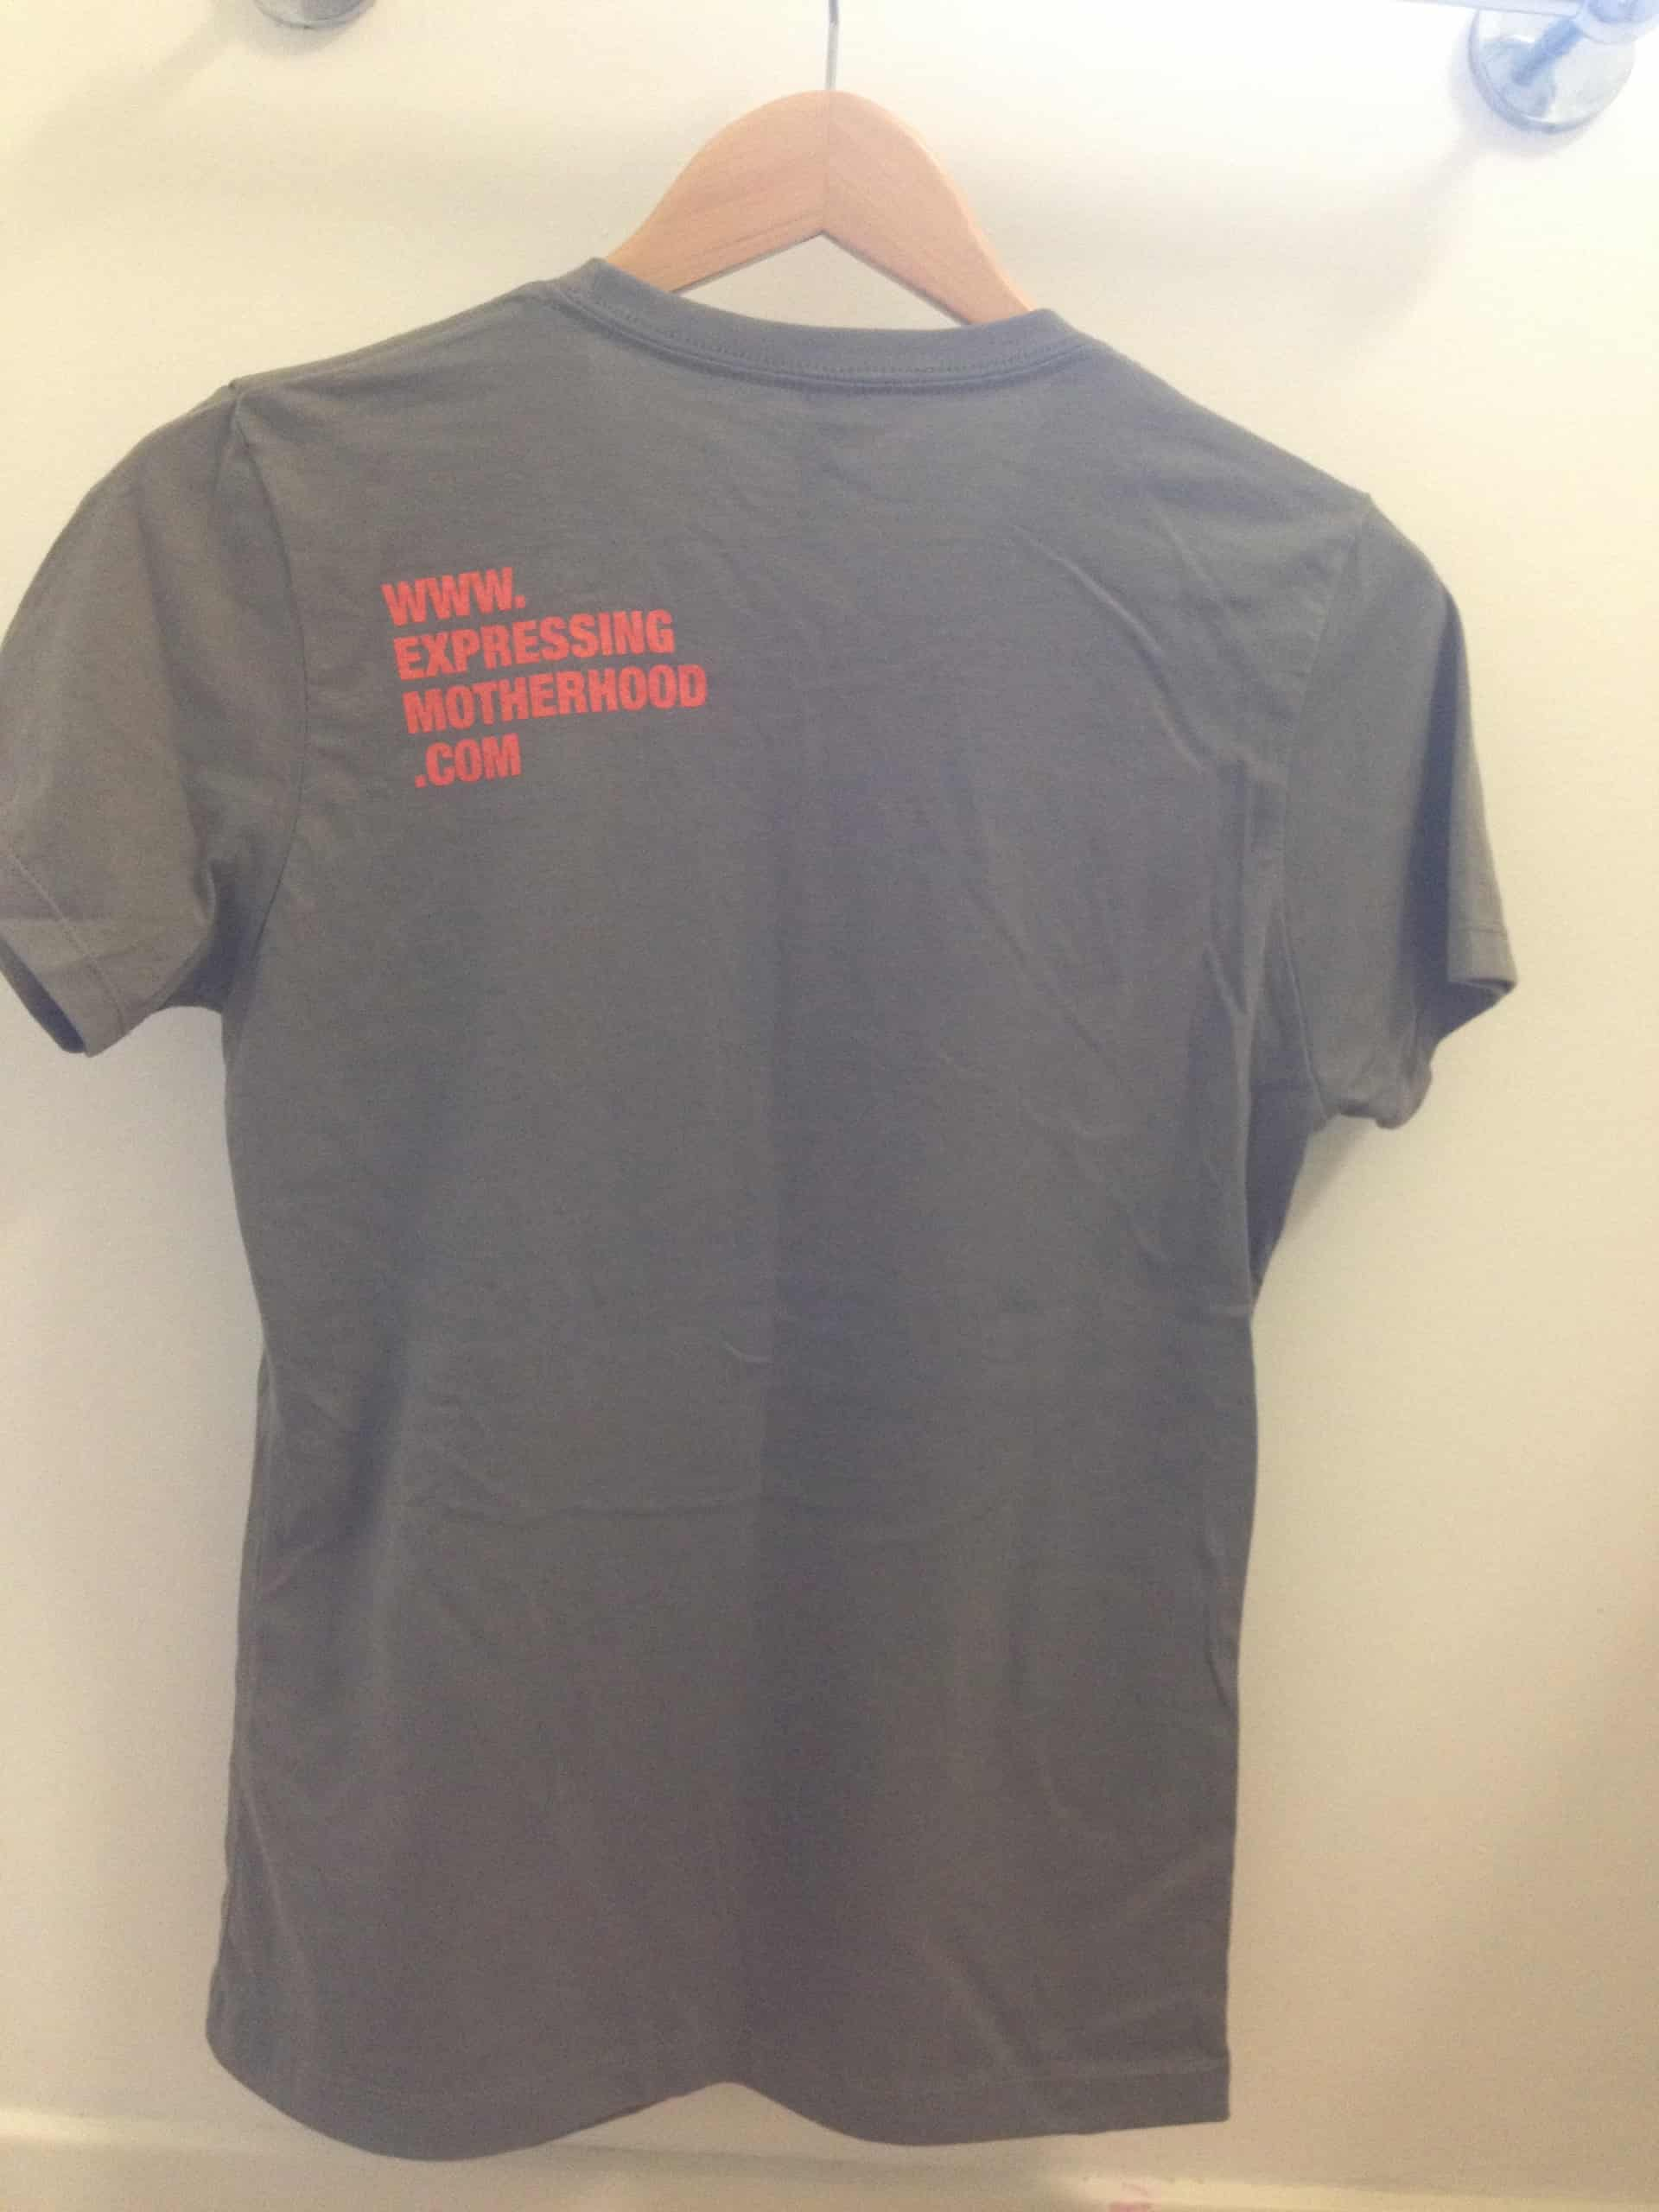 Here is the back of the t-shirt.